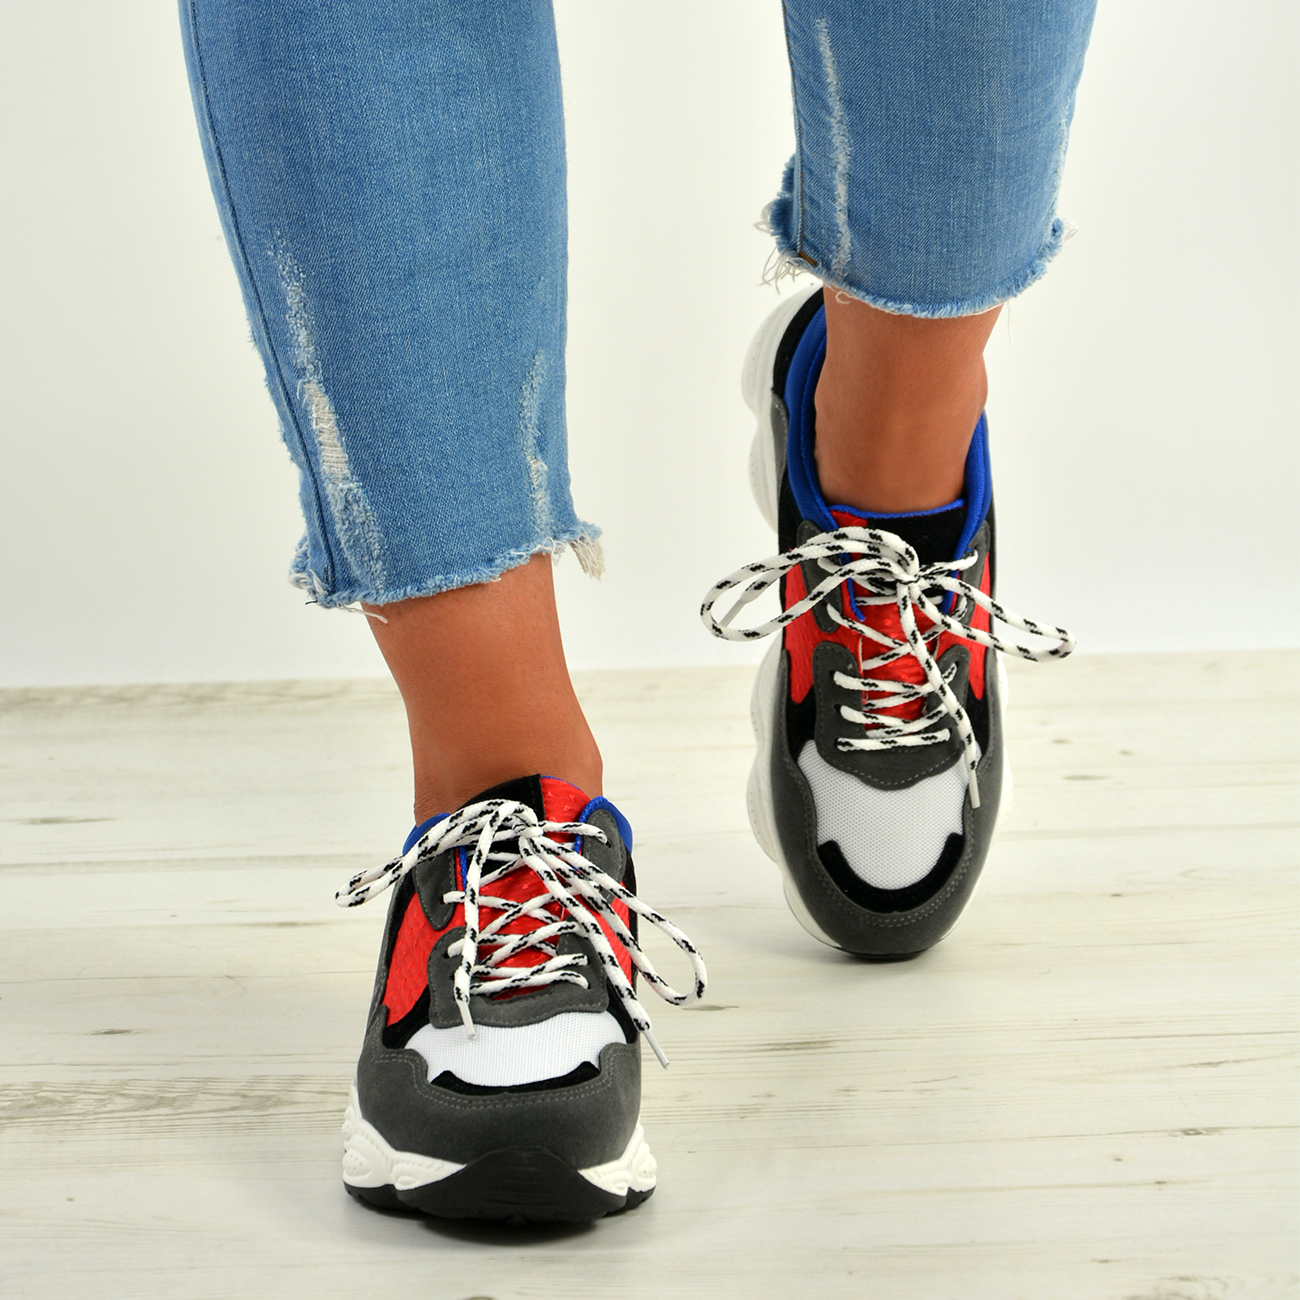 WOMENS-LADIES-RUNNING-GYM-CHUNKY-TRAINERS-SNEAKERS-SHOES-SIZE miniatura 11